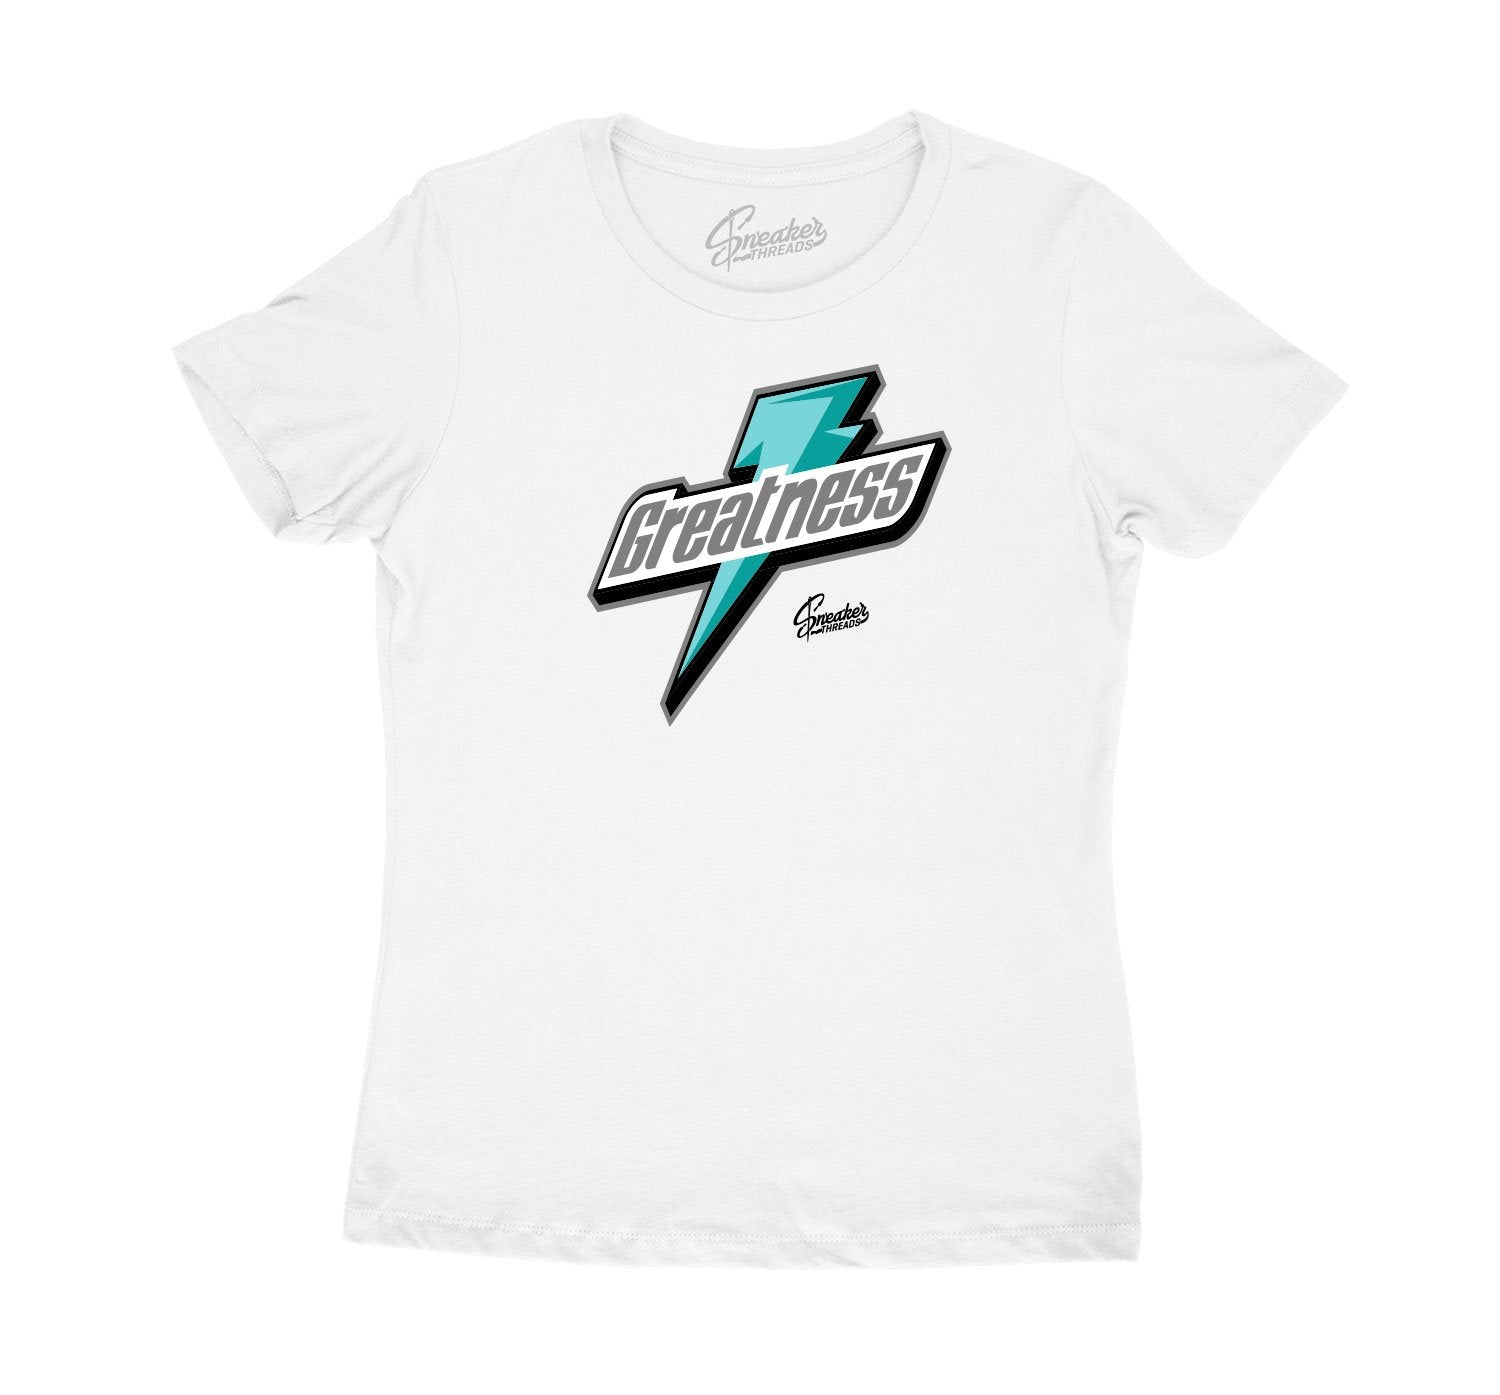 WOMENS tees created perfect to match the Jordan 13 island green sneakers